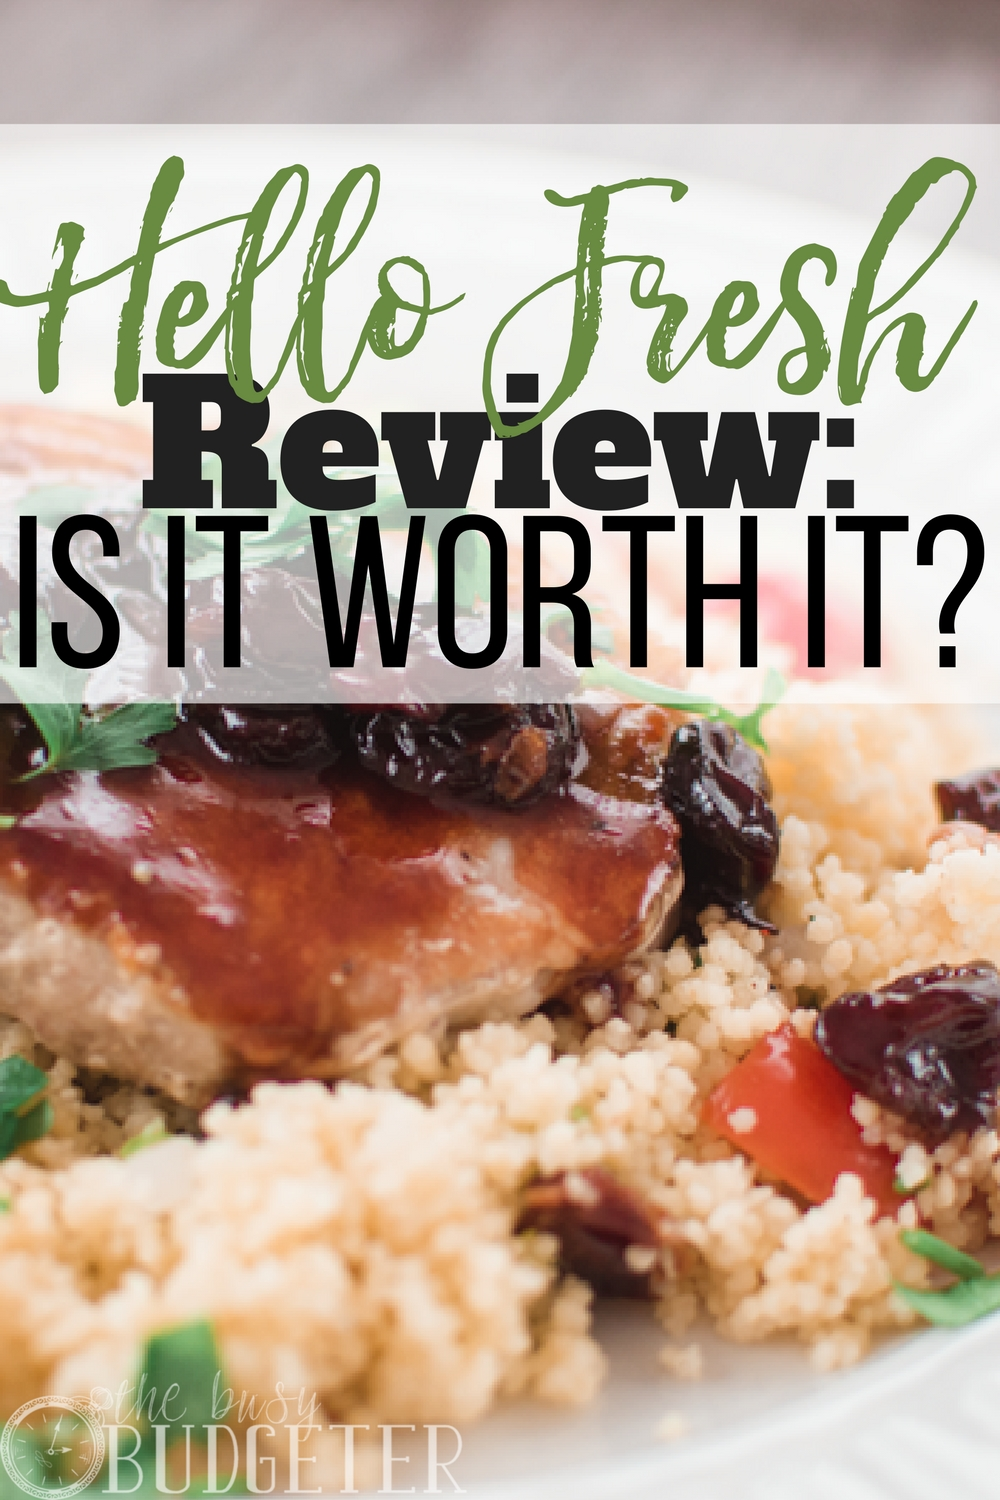 Giveaway Free No Survey Hellofresh